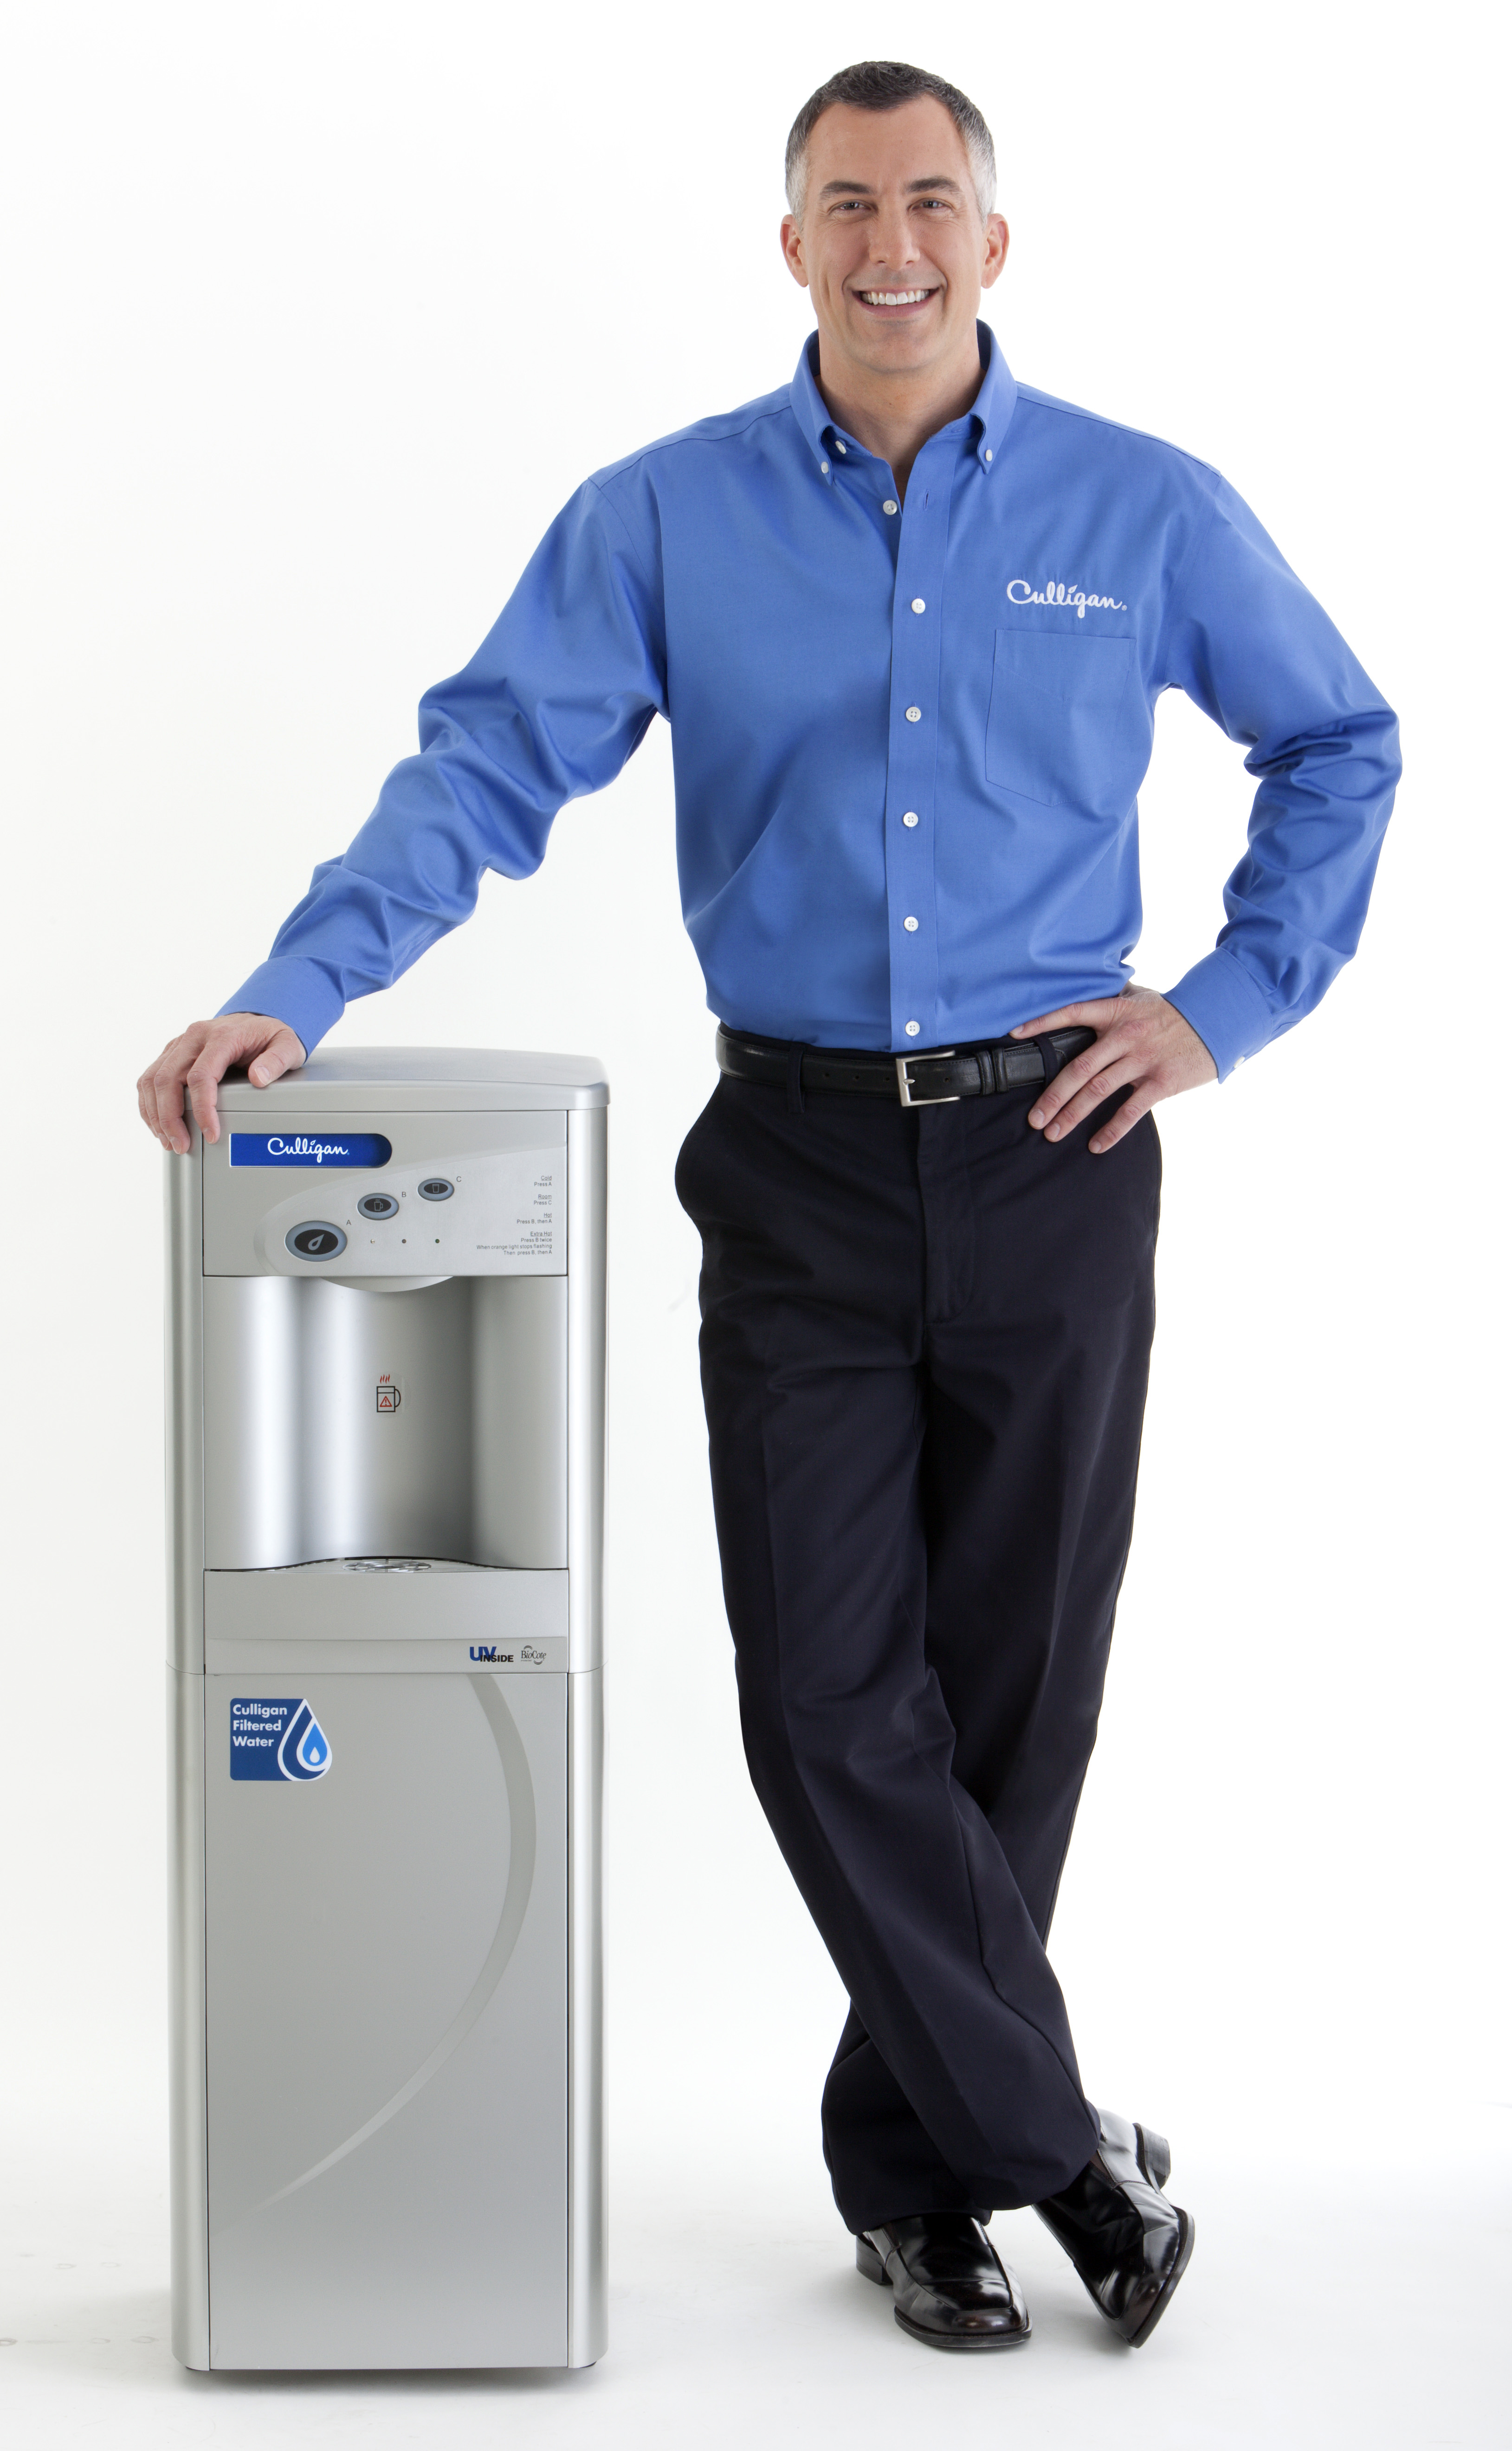 Bottle-Free Coolers